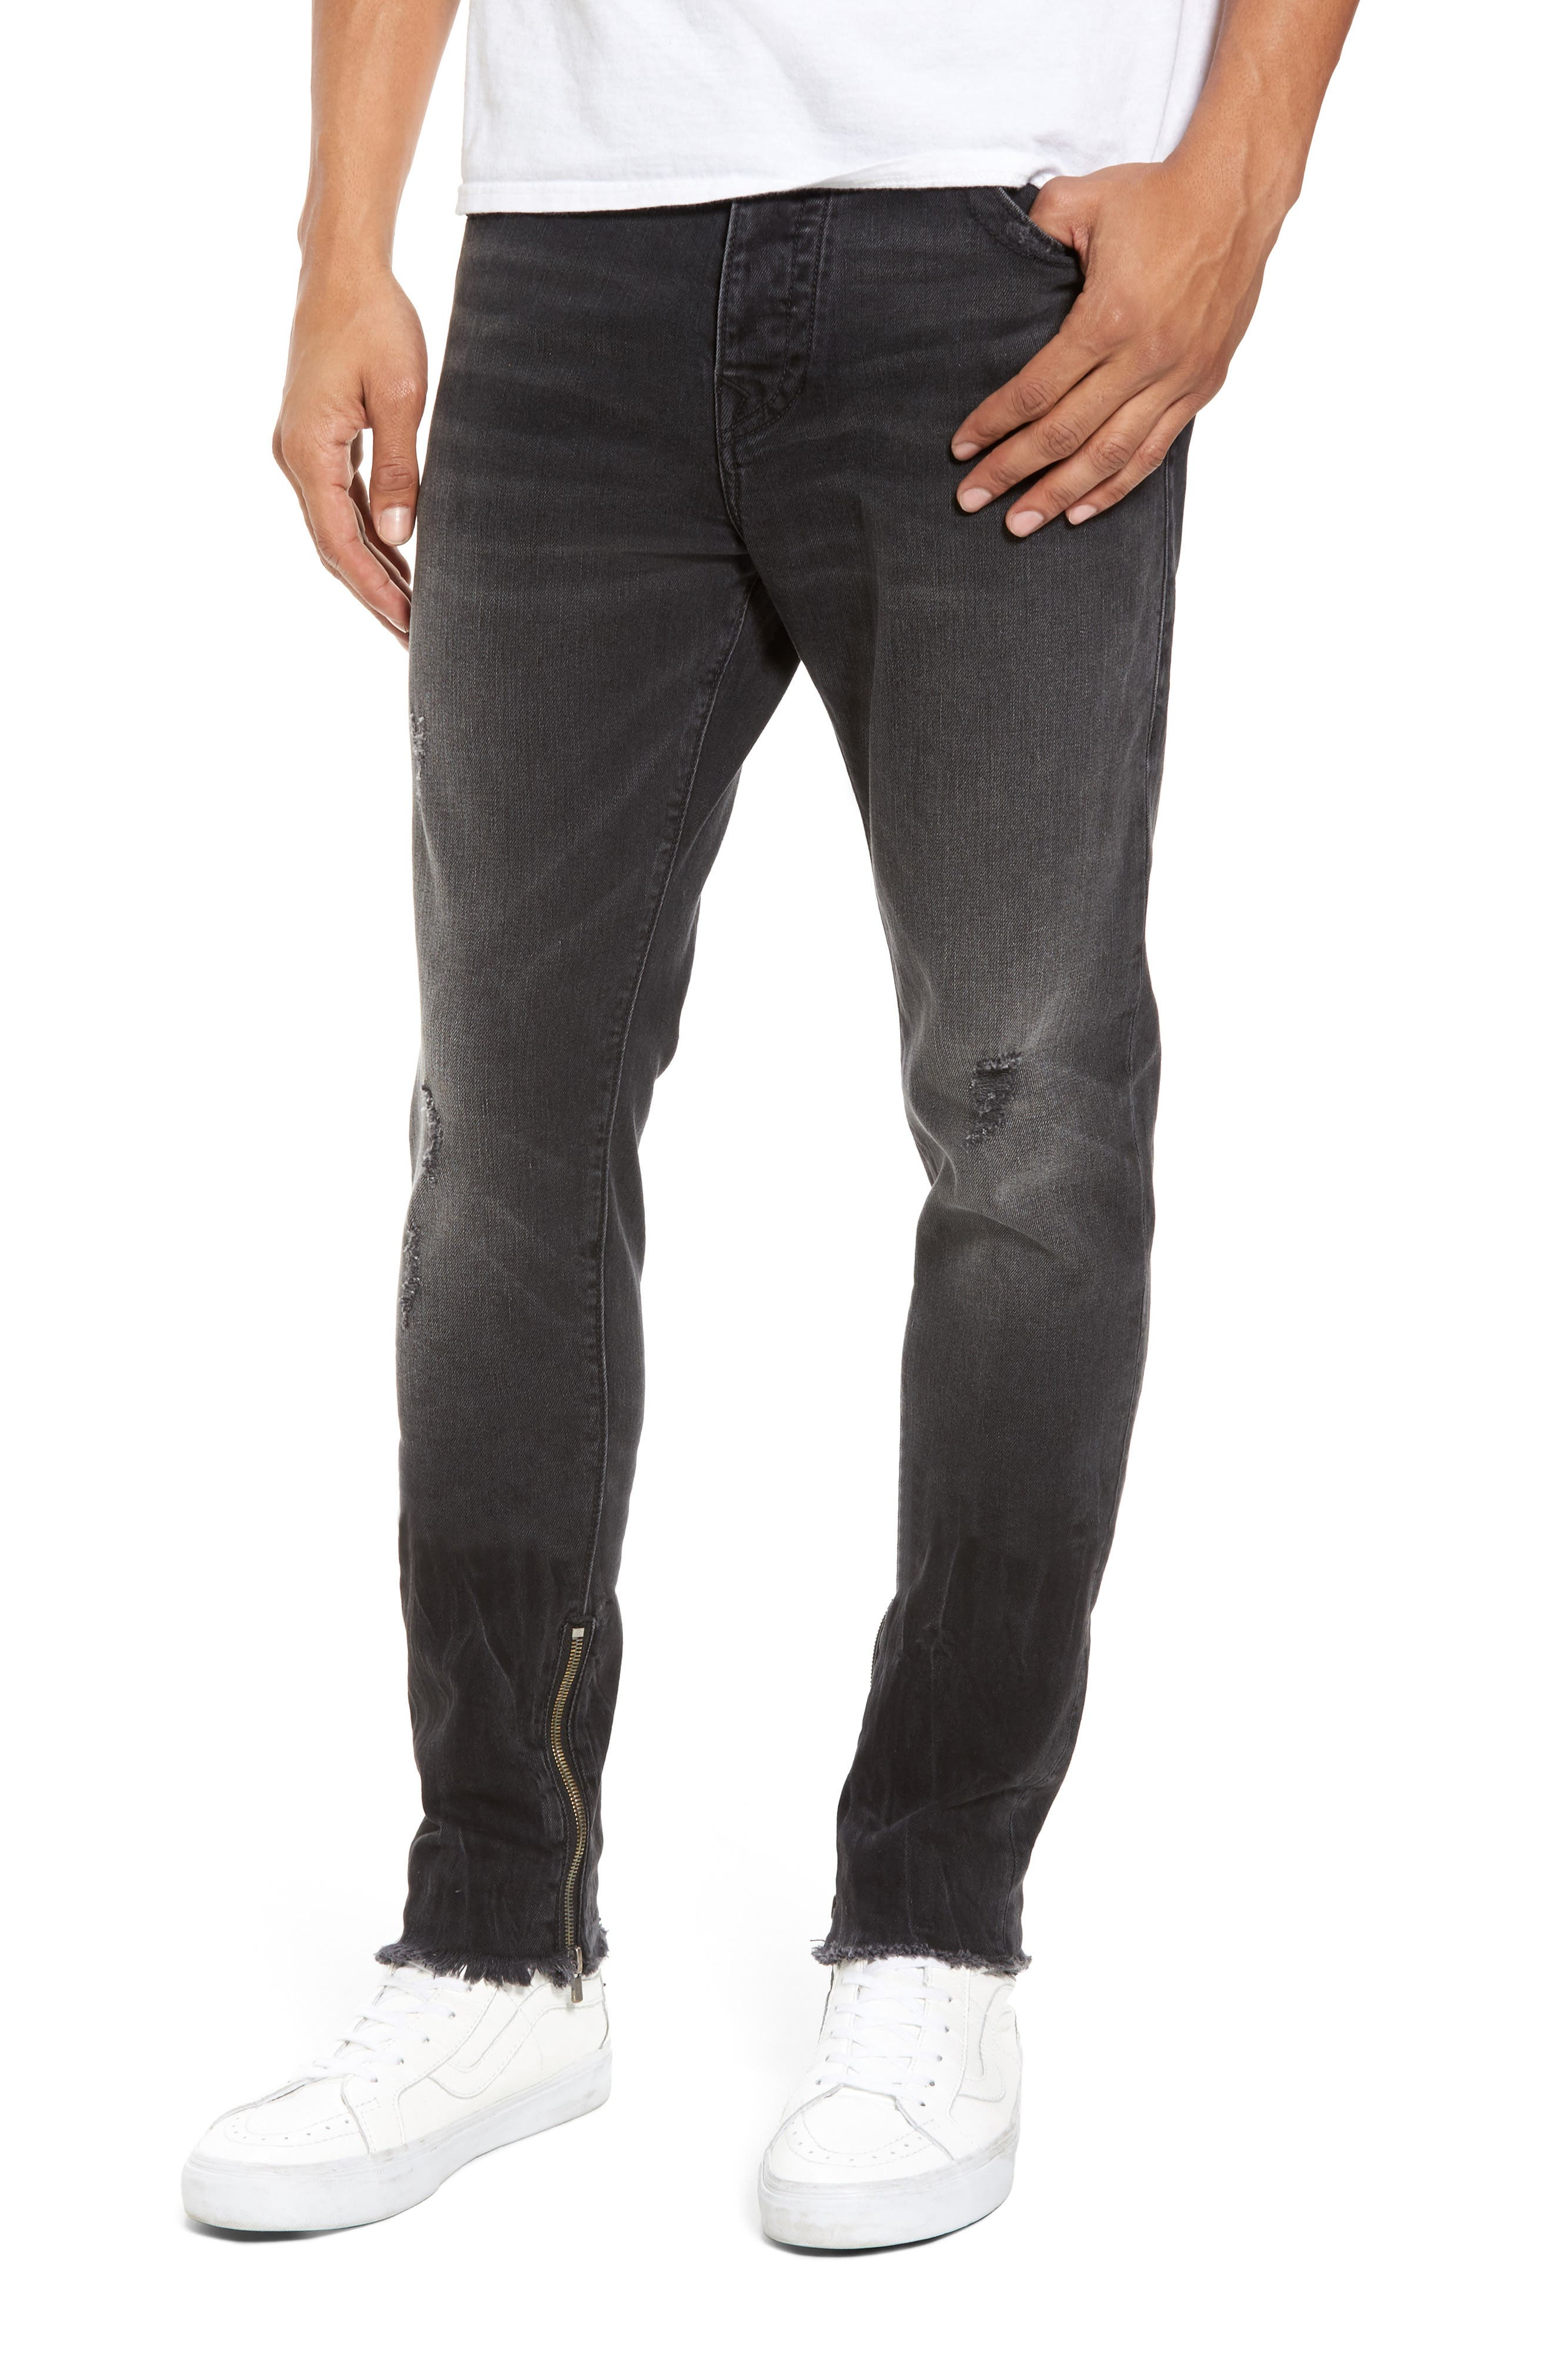 True Religion Brand Jeans Finn Frayed Skinny Fit Jeans (Dark Envy)